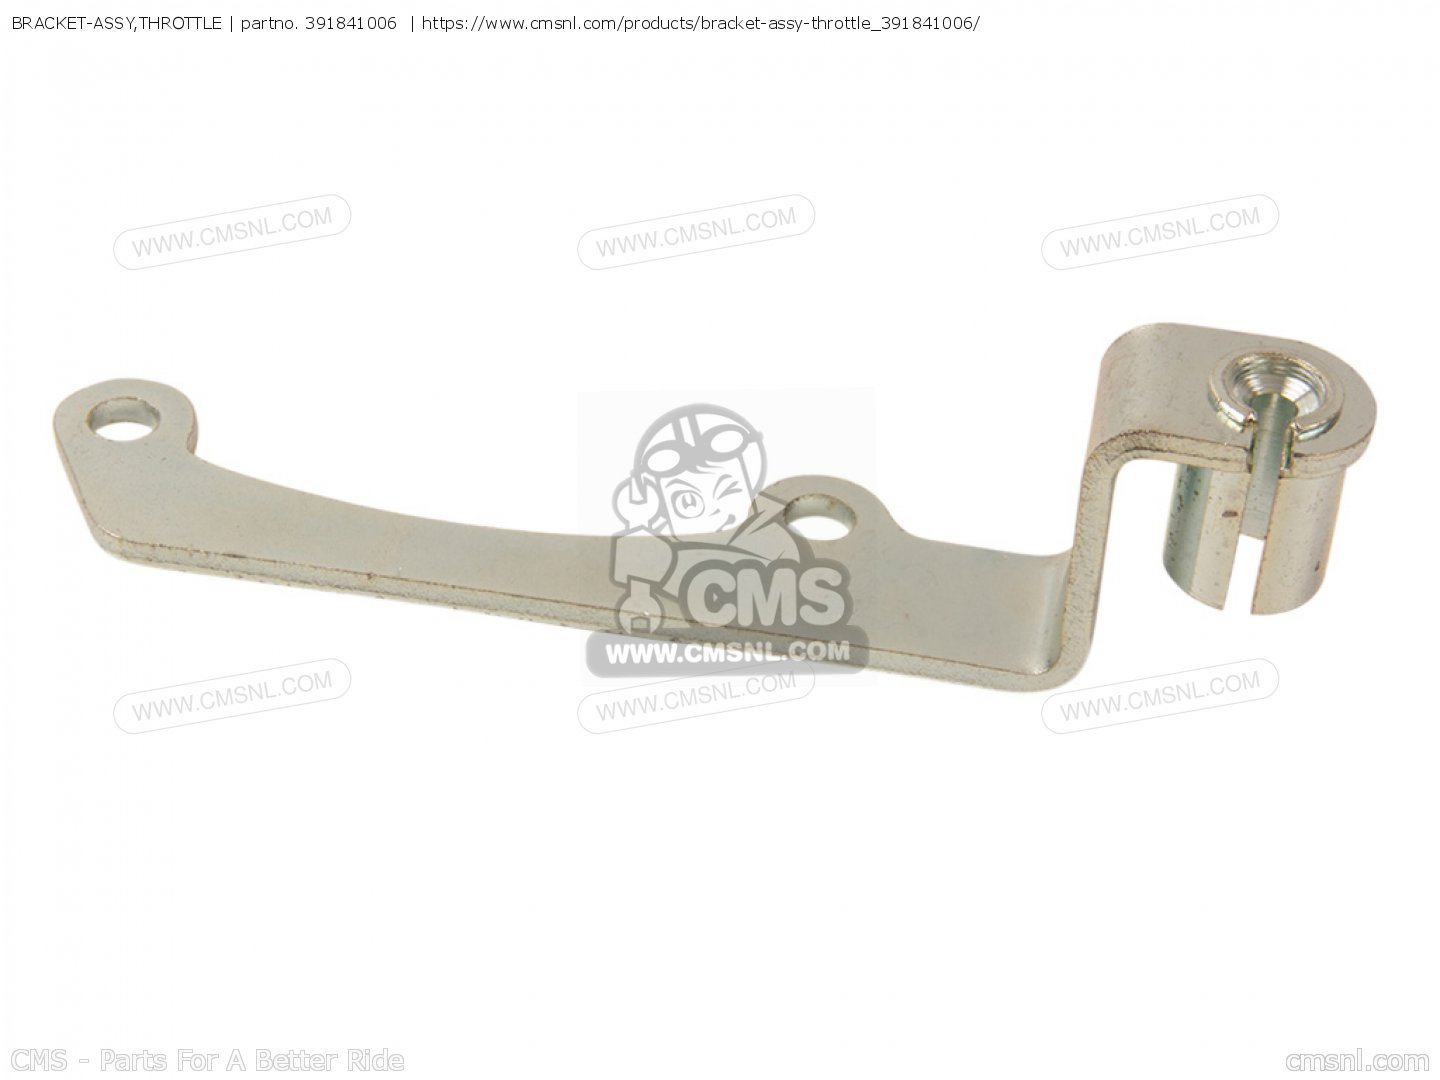 bracket-assythrottle_big391841006-01_833e_2019-04-19.jpg